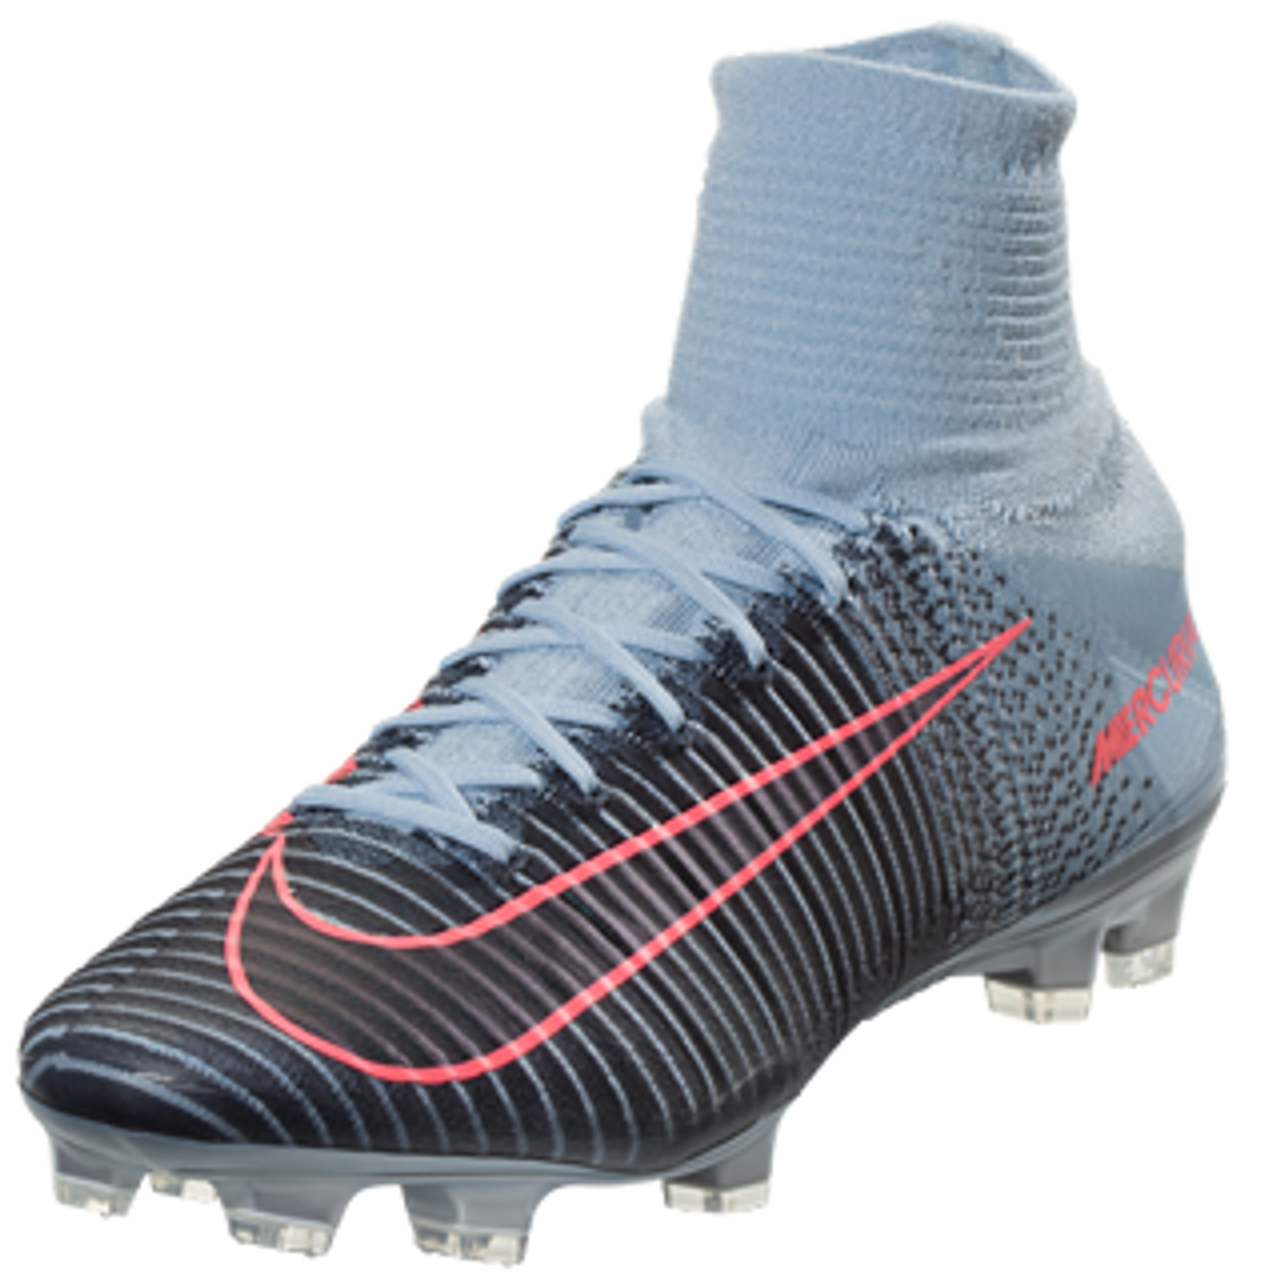 sale retailer 601e2 36b48 Nike Mercurial Superfly V FG Soccer Cleat - Light Armory Blue/Armory  Navy/Armory Blue/Hot Punch